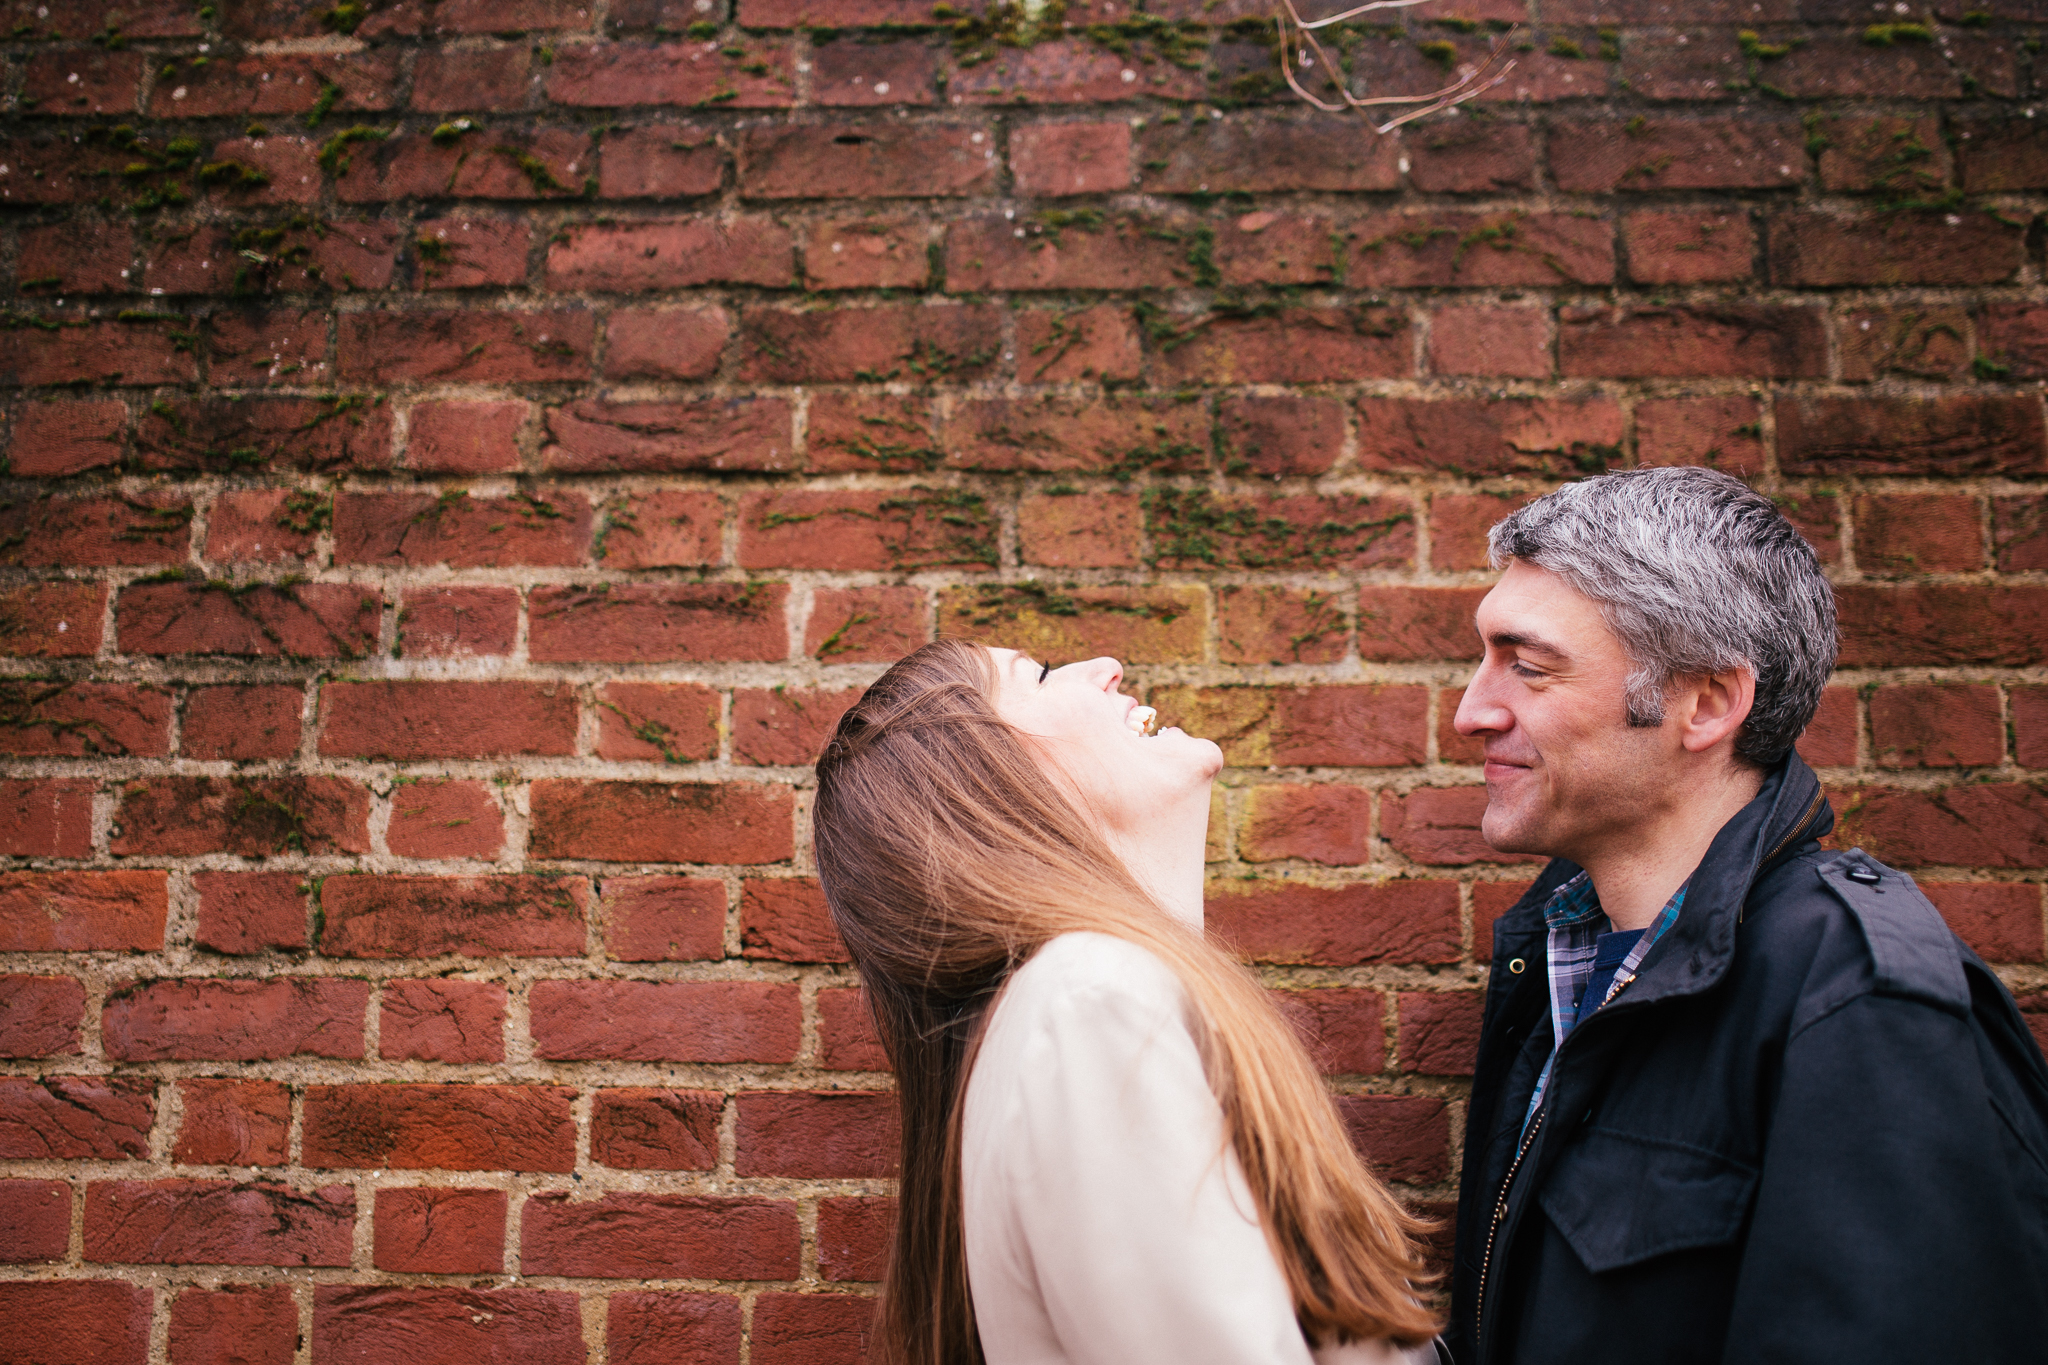 Richmond Park Engagement Photography Wedding Photographer Surrey (28 of 54).jpg